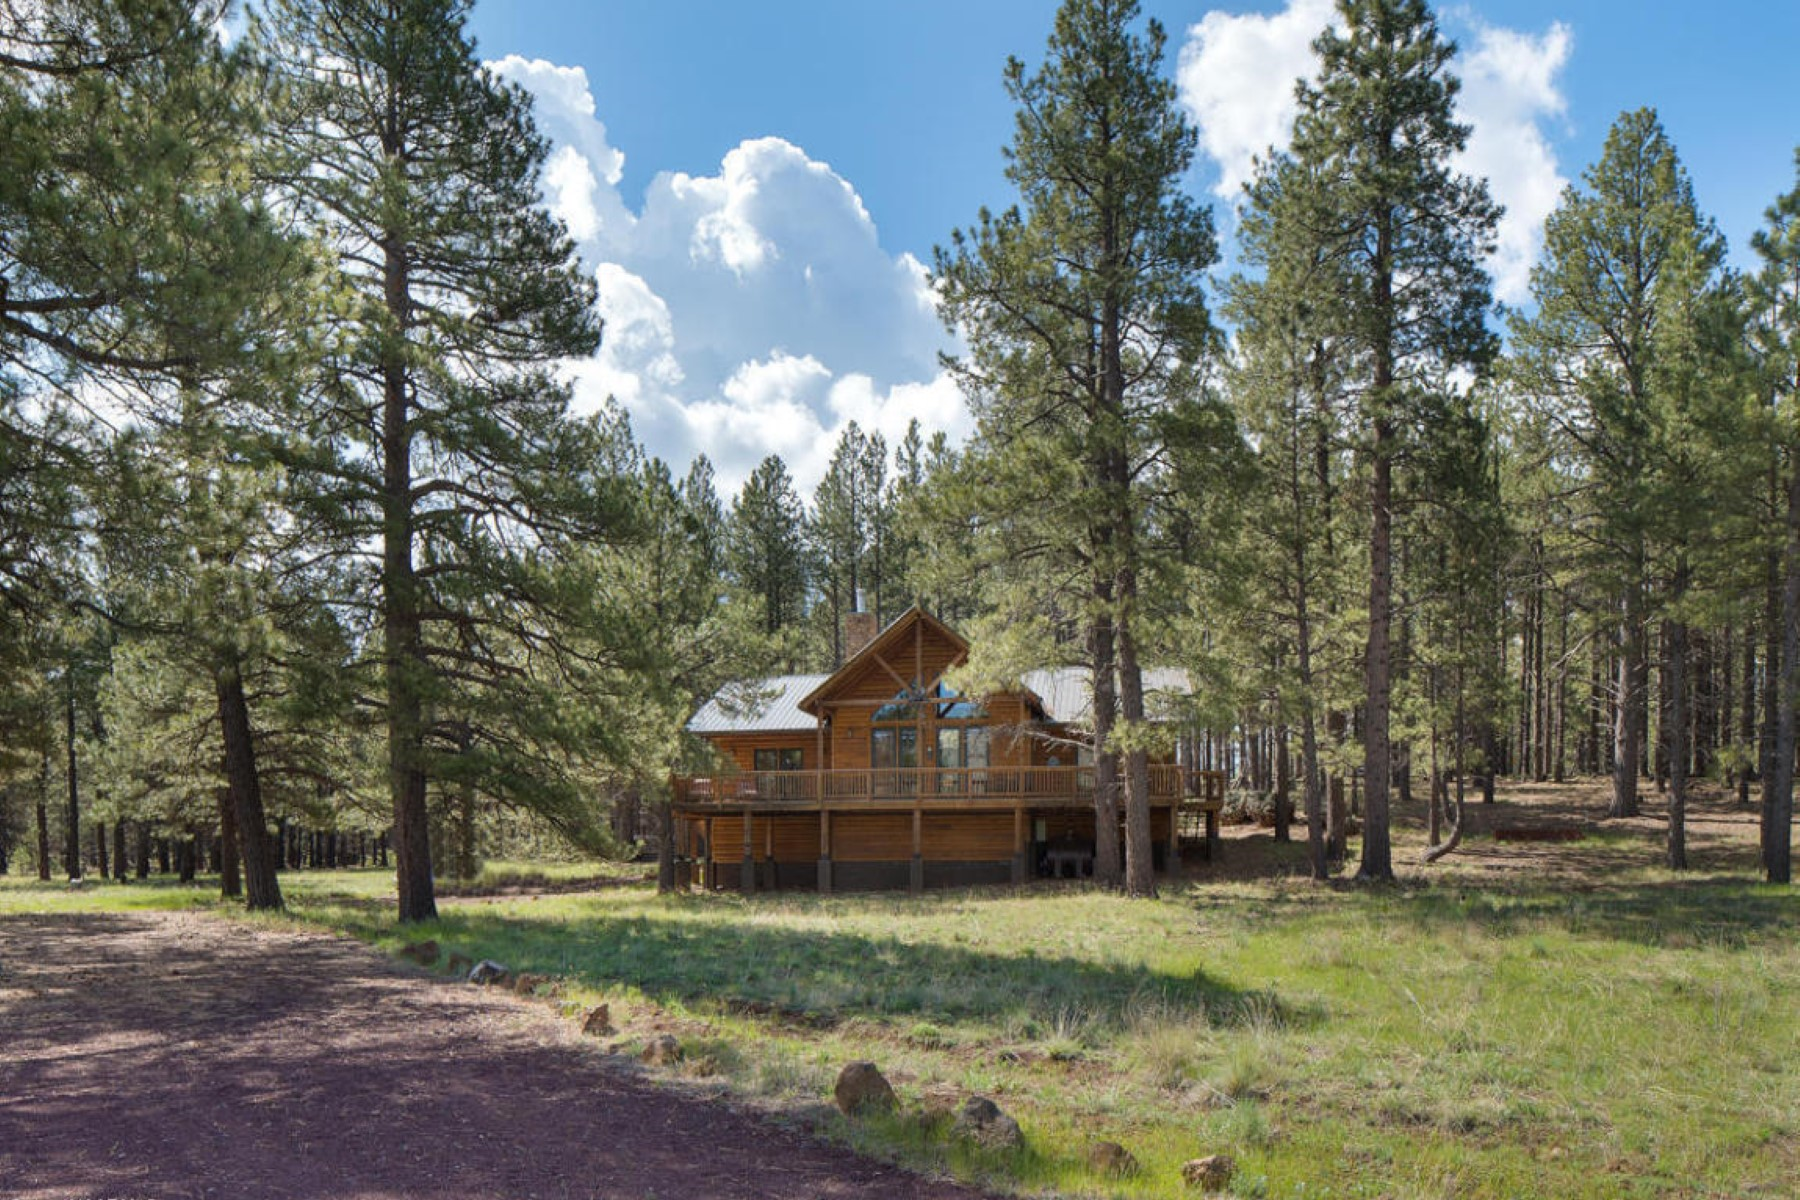 Casa para uma família para Venda às This is a rare opportunity to own a private custom log sided mountain retreat. 17242 Crowley TRL Flagstaff, Arizona 86001 Estados Unidos